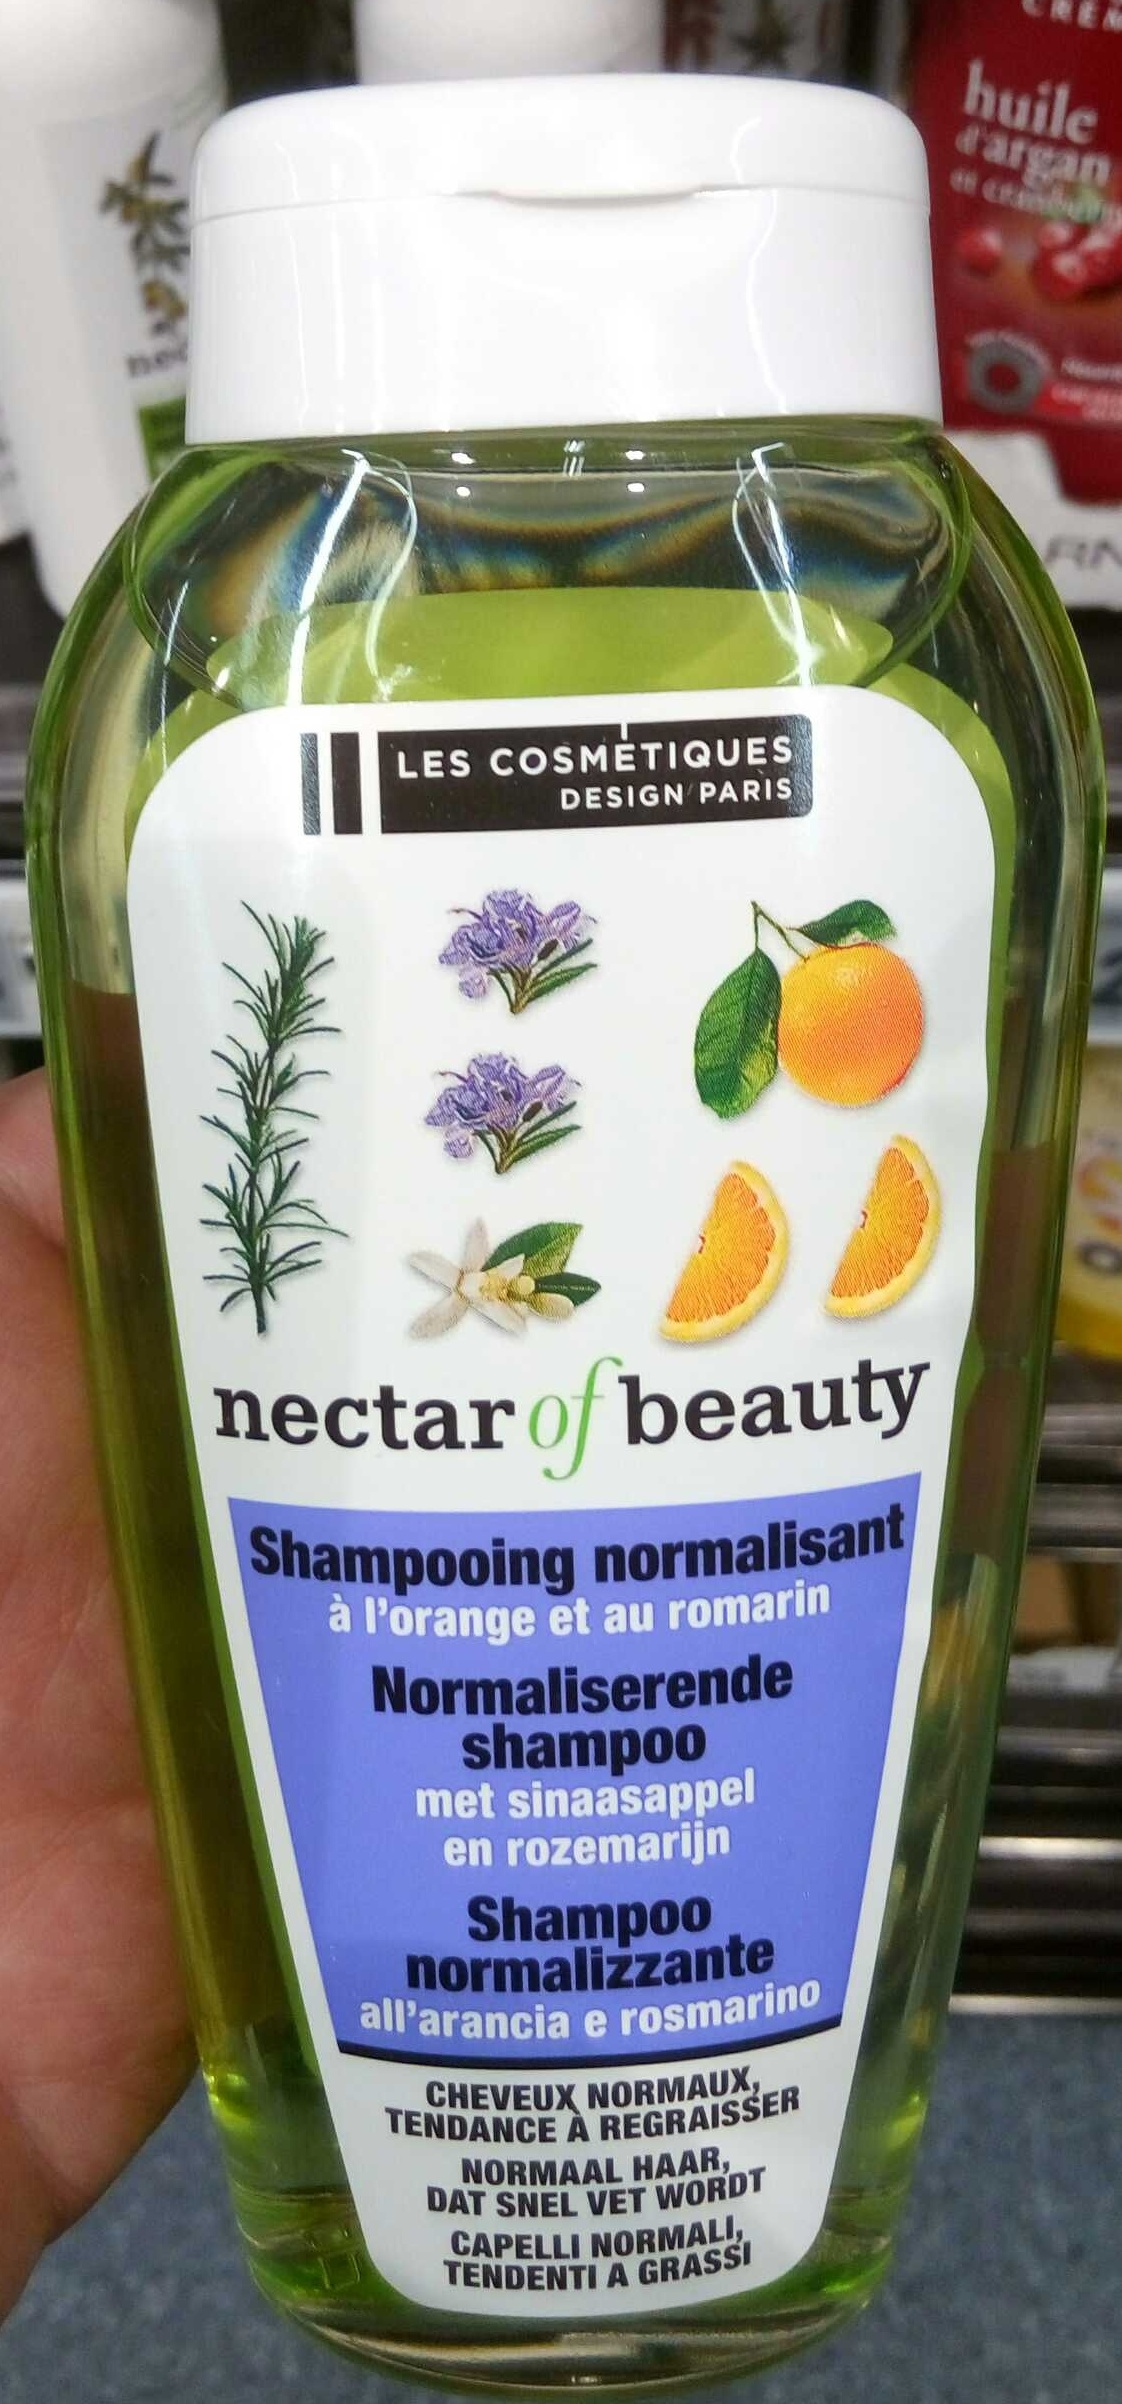 Shampooing normalisant - Product - fr